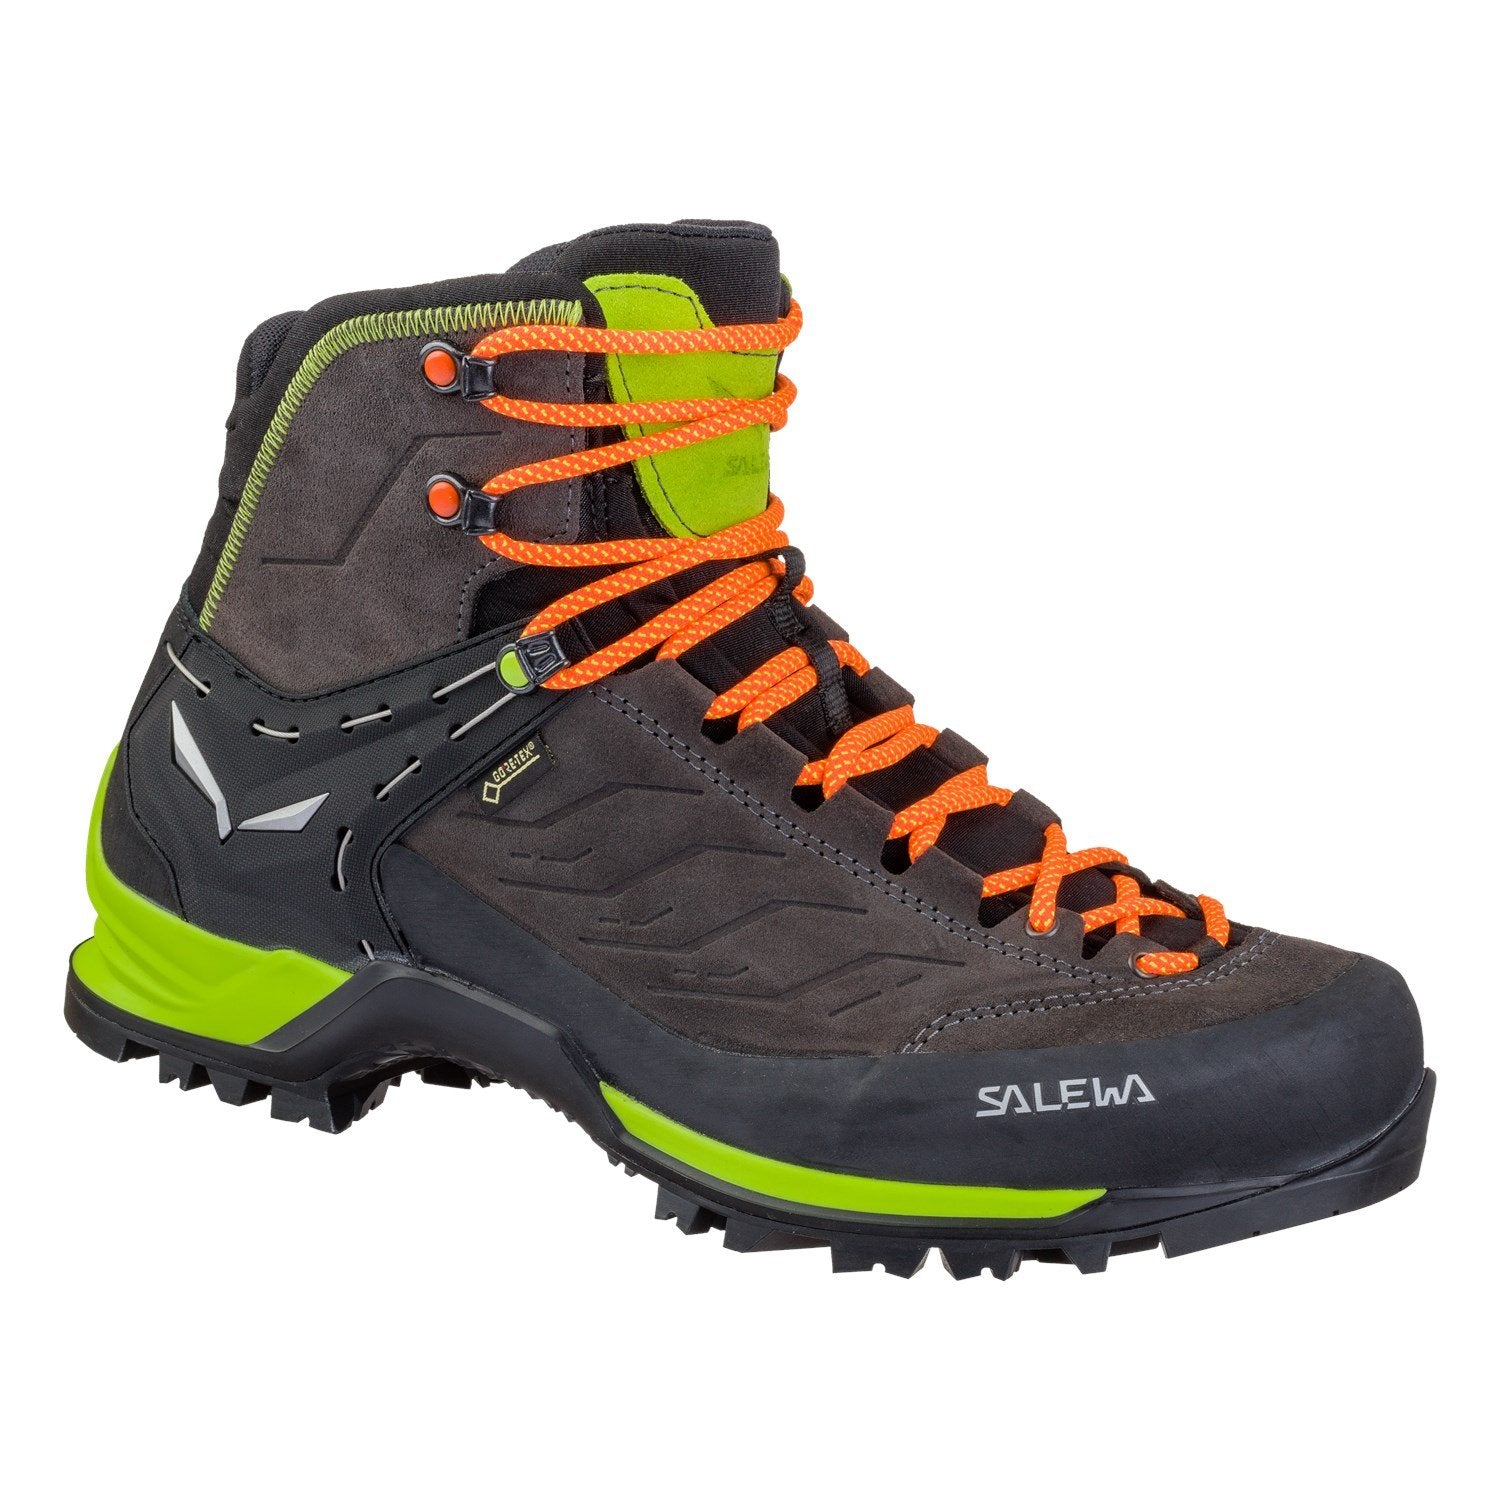 Salewa MTN Trainer Mid GTX trekking boot, in black, green and orange colours